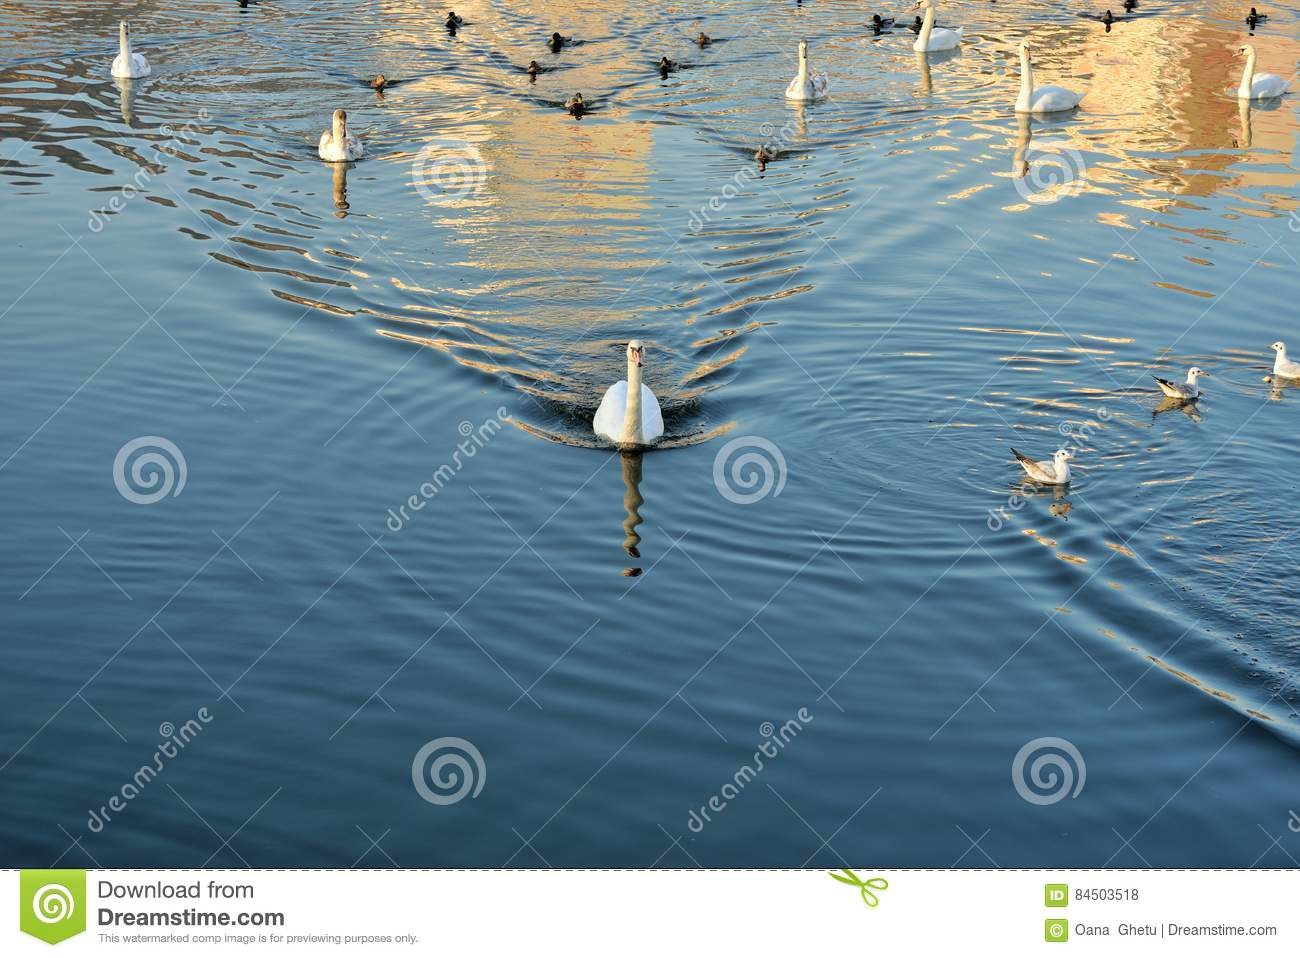 Swans, ducks and gulls on the river